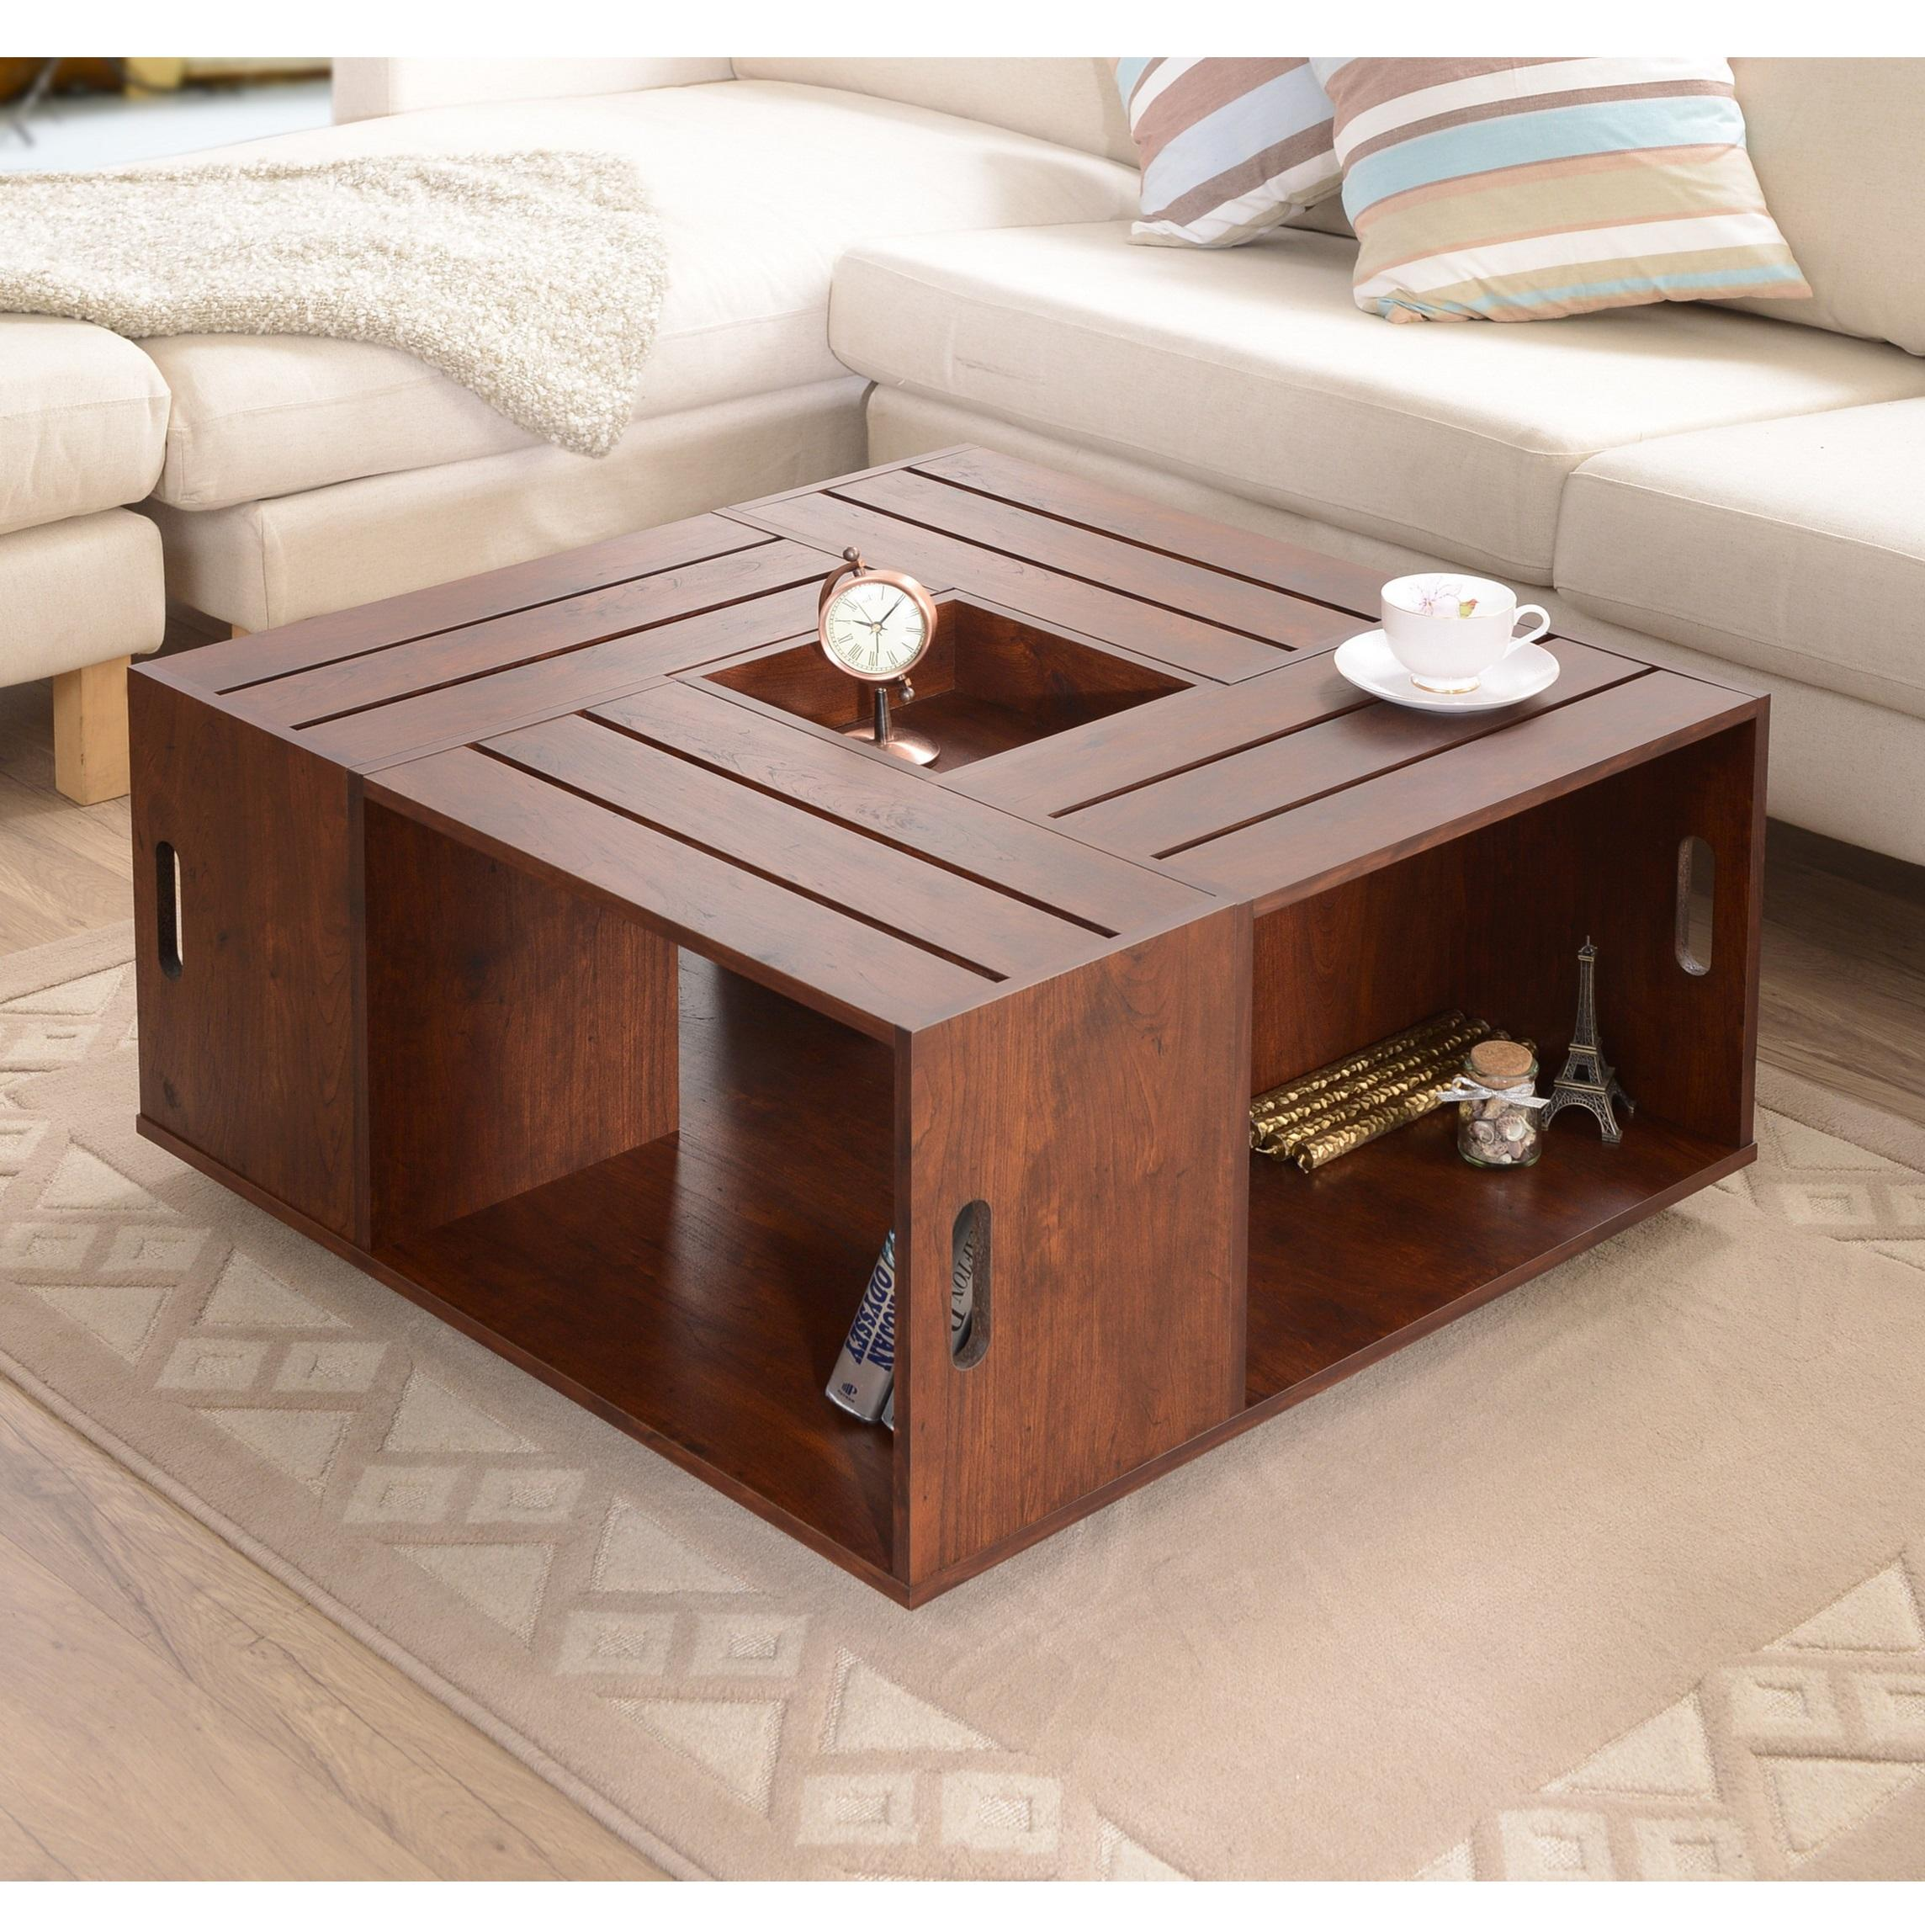 Iohomes Trenton Crate Coffee Table Vintage Walnut Kitchen Dining